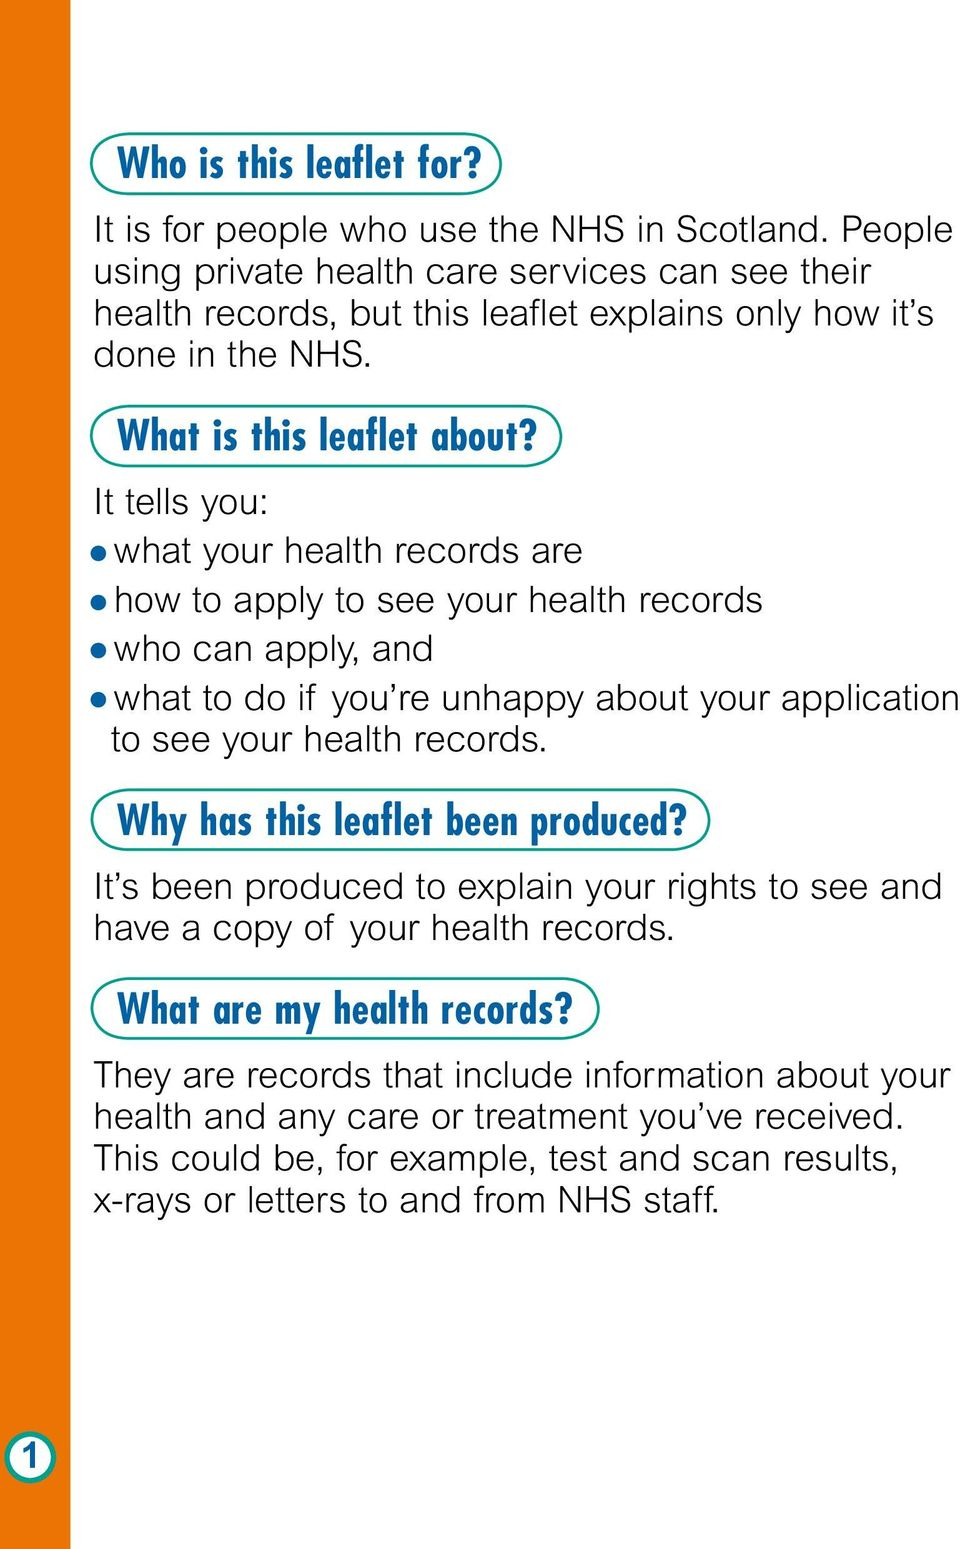 It tells you: what your health records are how to apply to see your health records who can apply, and what to do if you re unhappy about your application to see your health records.